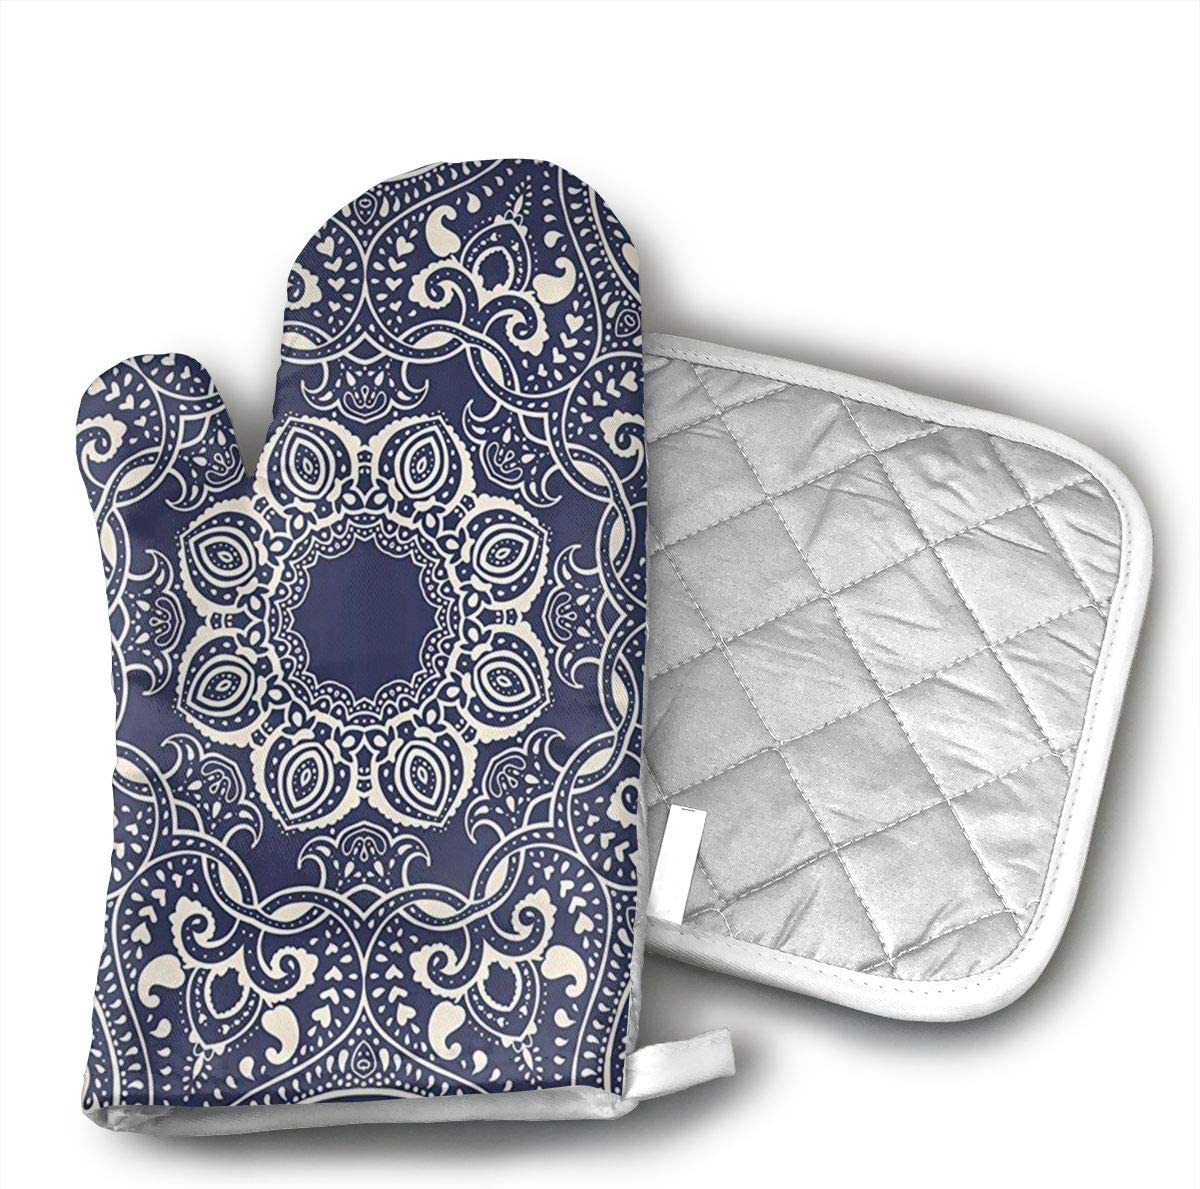 RBfhk Circular Pattern Summer Boho Bohemian Native Asian Oven Mitts Heat Resistant Potholders Cooking Gloves Non-Slip Barbecue Gloves,